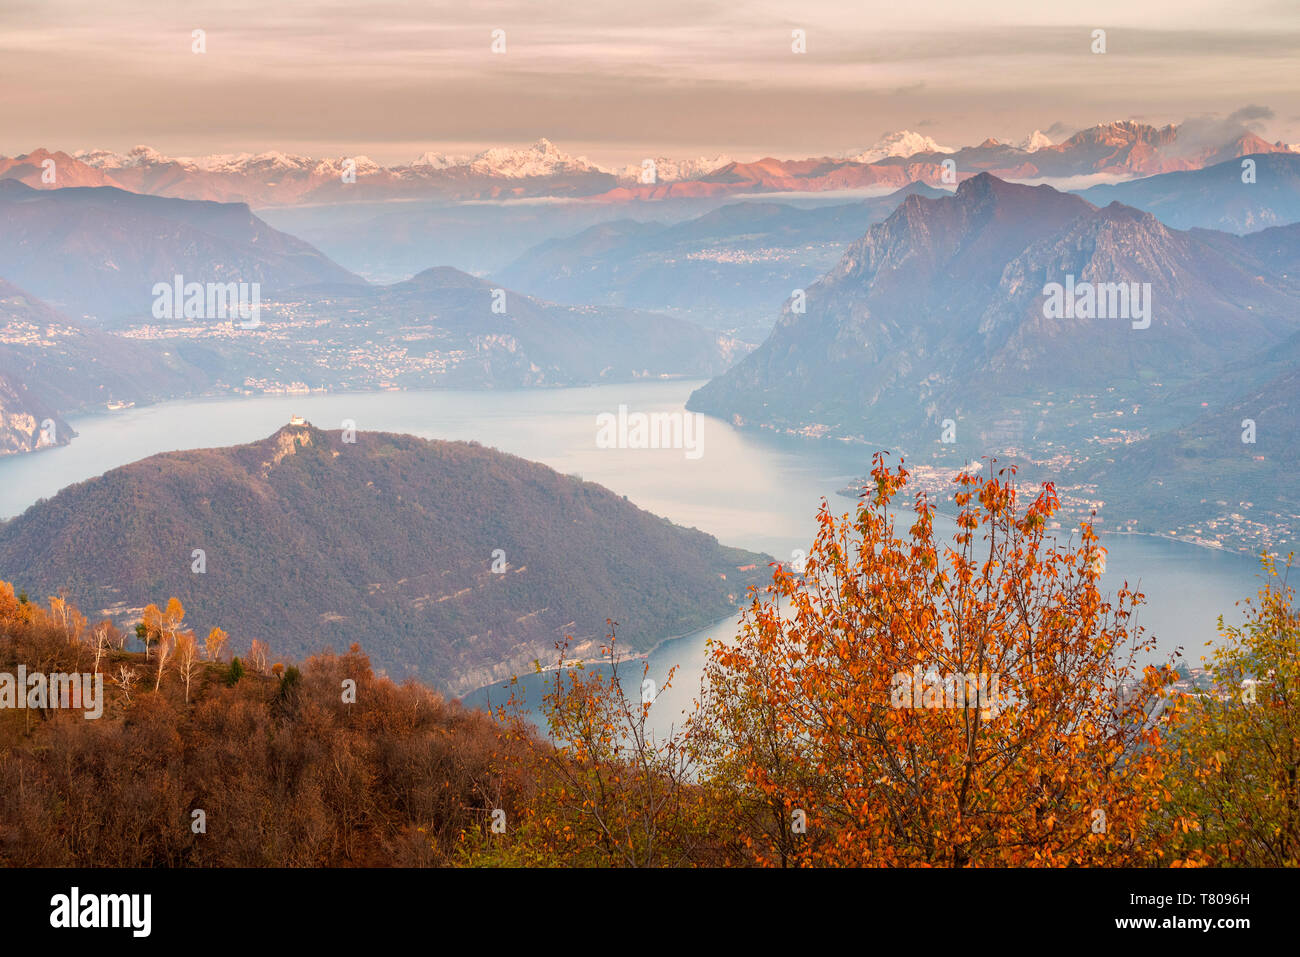 Iseo Lake, Monte Isola and Orobie Alps at sunset with fog in autumn season, Brescia Province, Lombardy, Italy, Europe - Stock Image